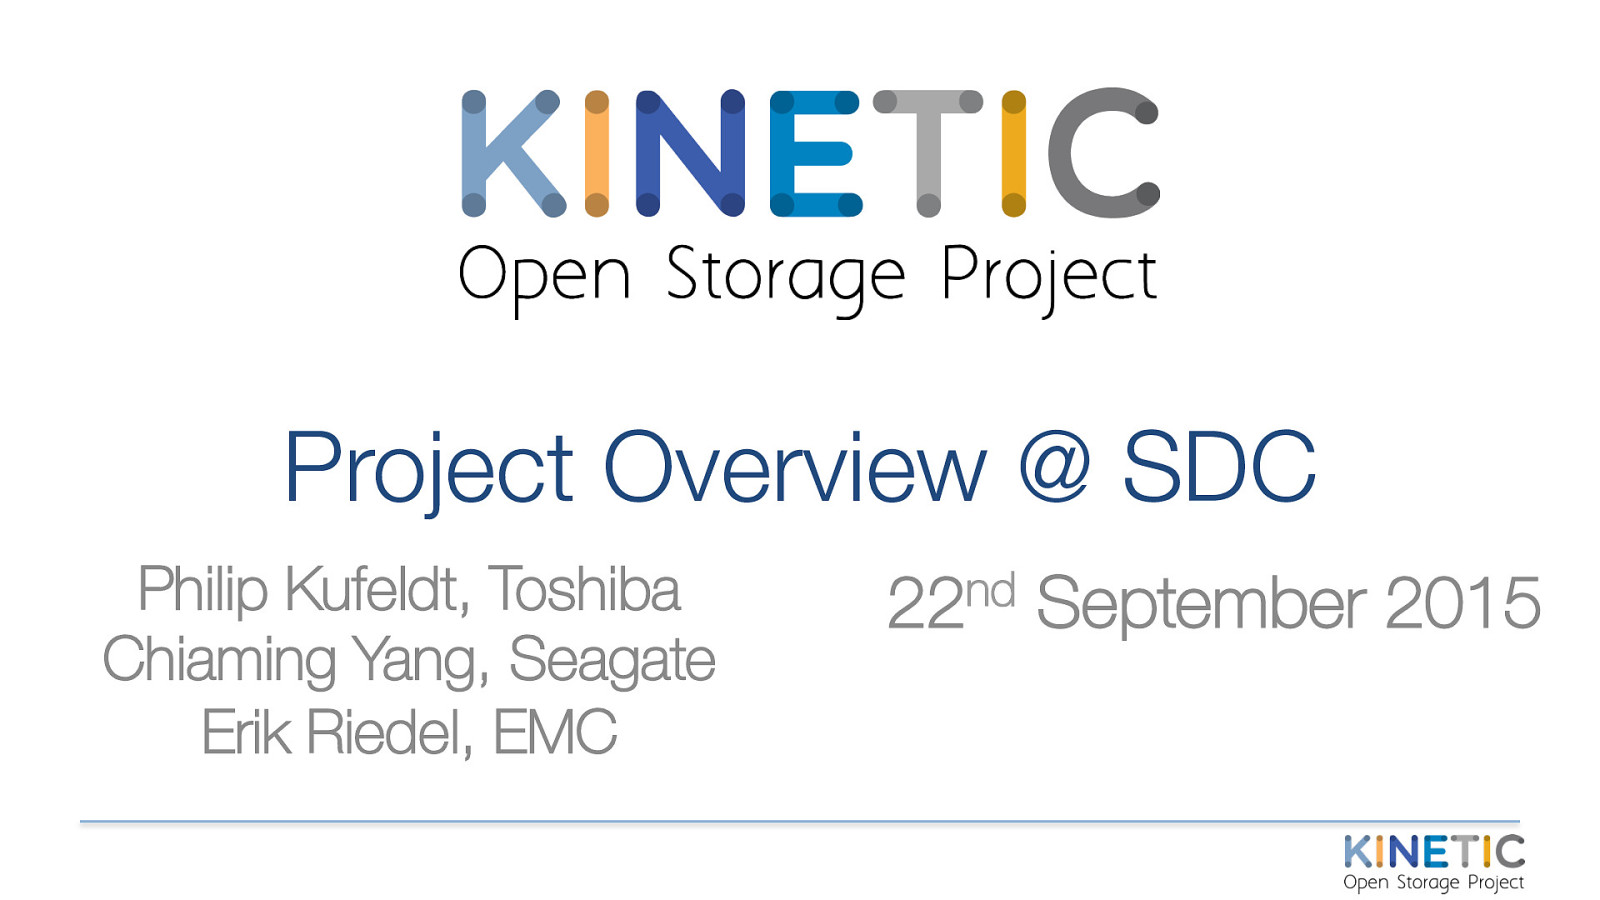 Kinetic Open Storage Project - Project Overview